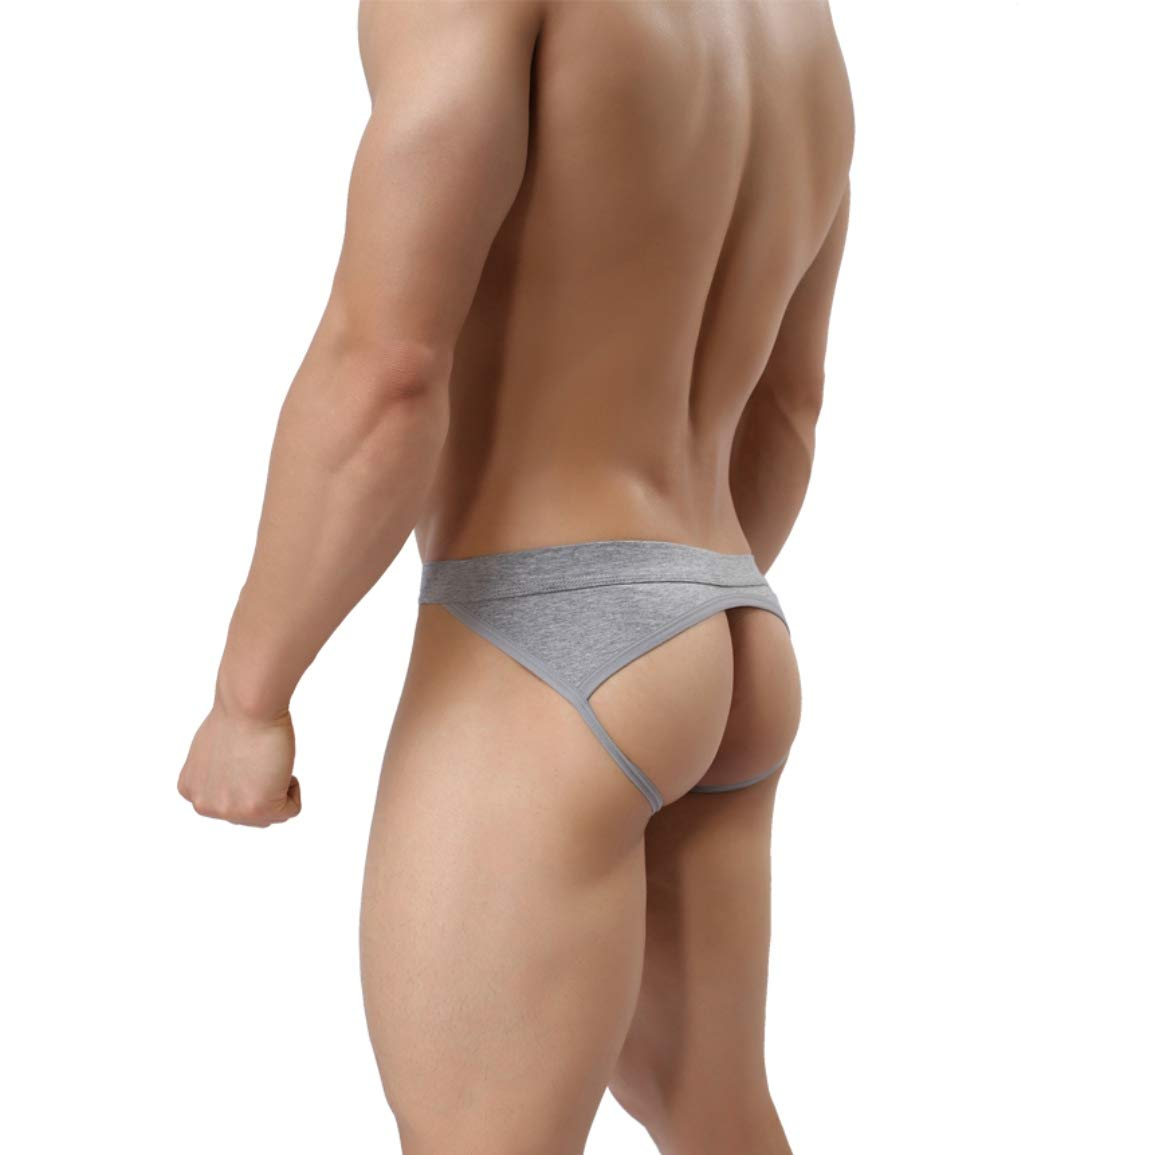 9dbd086f316e6c MuscleMate Premium Men's Jockstrap Men's Hot Thong Underwear Low Raise,  Comfort, (XL, Grey) < G-Strings & Thongs < Clothing, Shoes & Jewelry - tibs